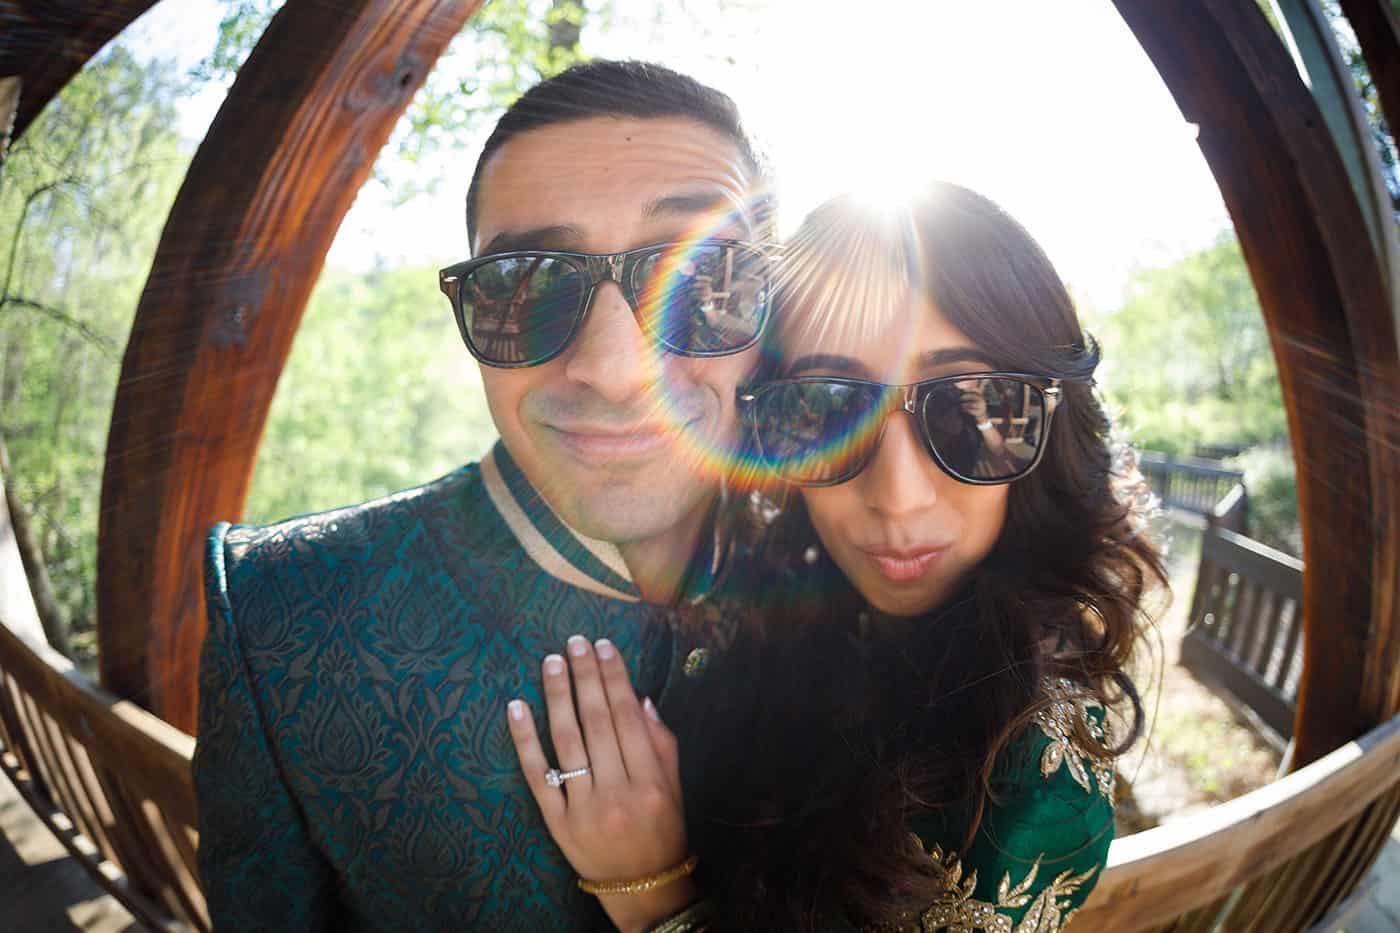 This is the Key to Amazing Client Relationships | An Indian couple pose for a fisheye portrait in their sunglasses.